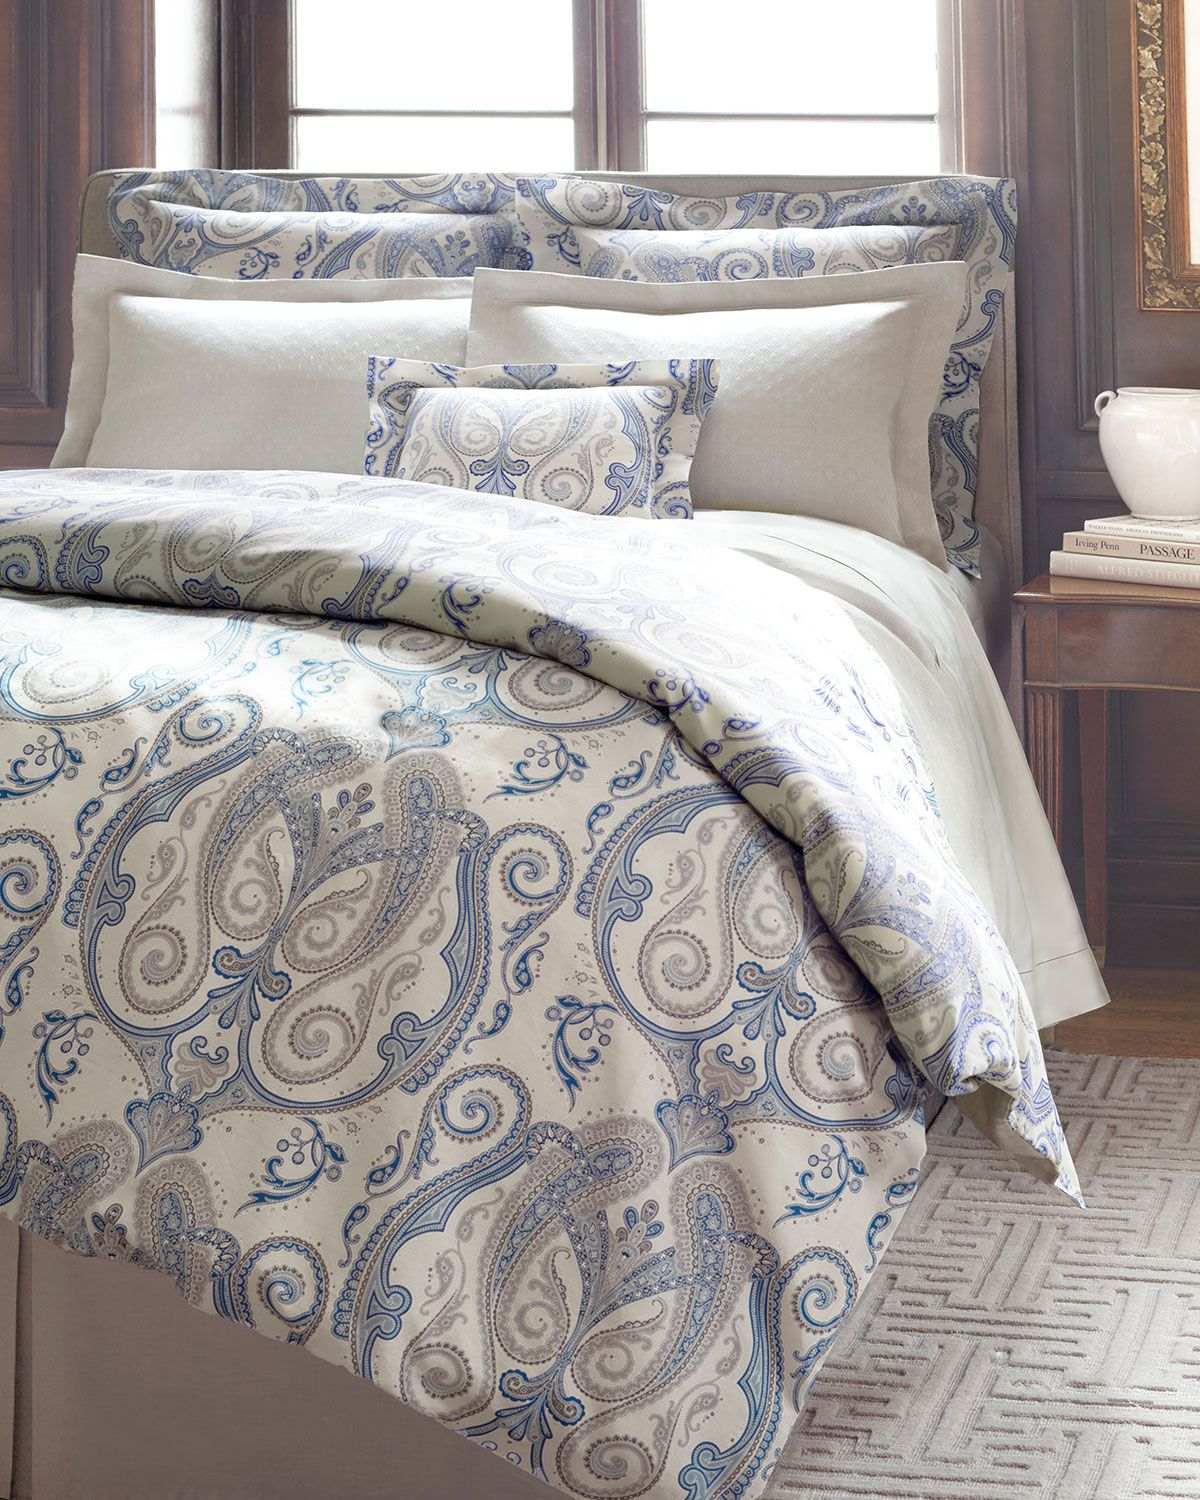 Annie Selke Luxe Ravello Paisley Bedding www